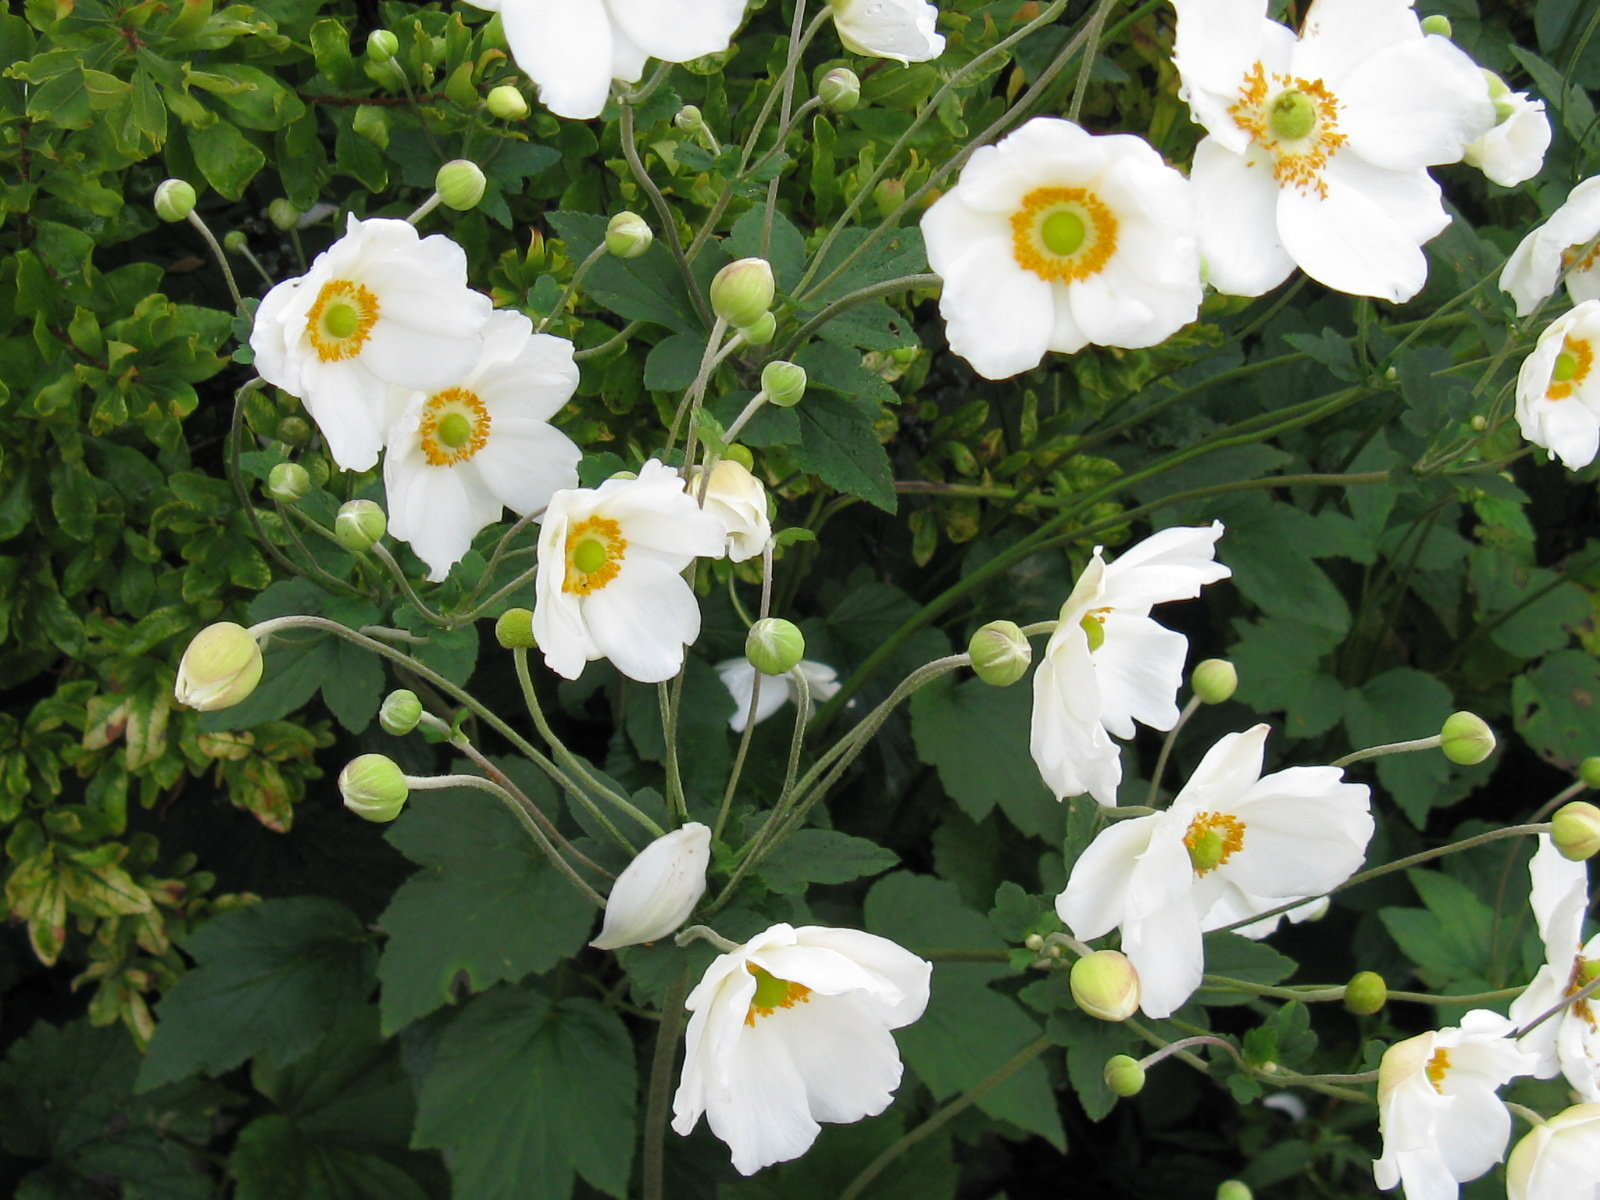 Anemone in bloom